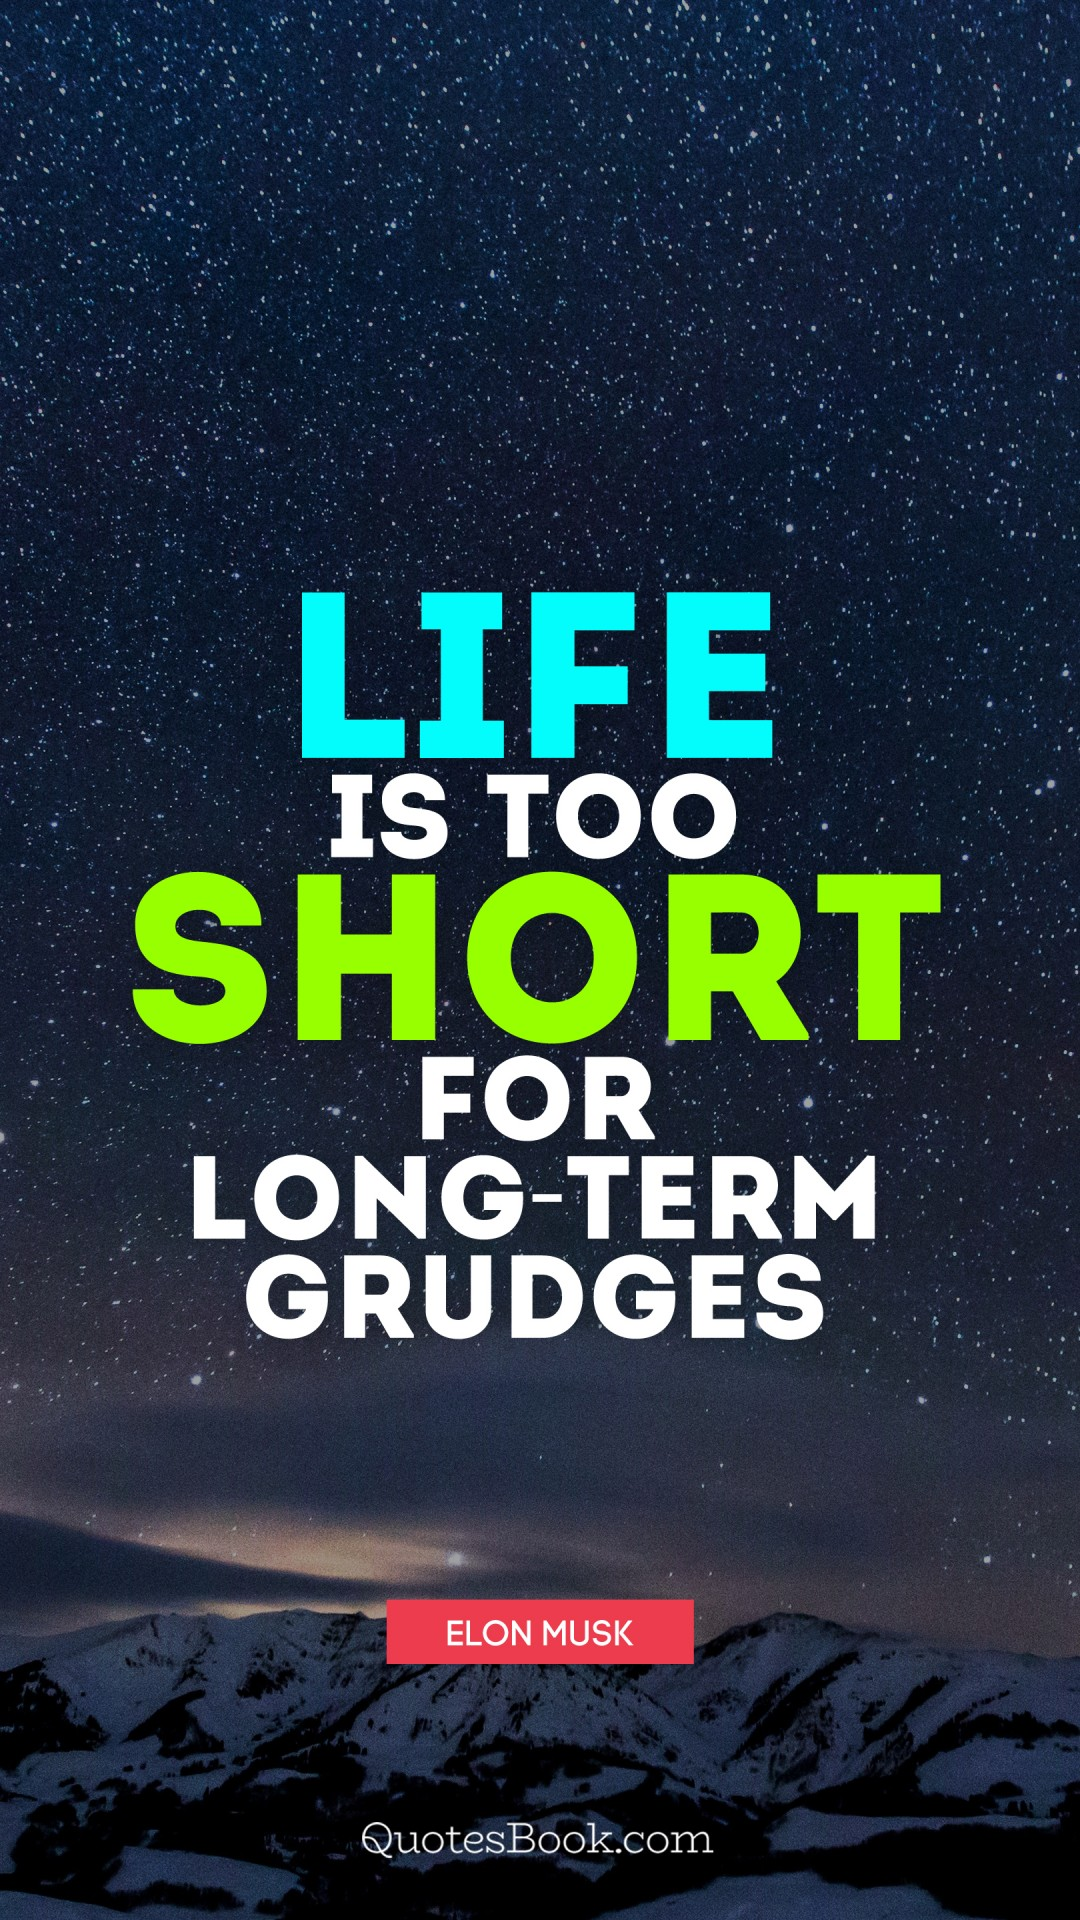 Life is too short for long-term grudges. - Quote by Elon ...